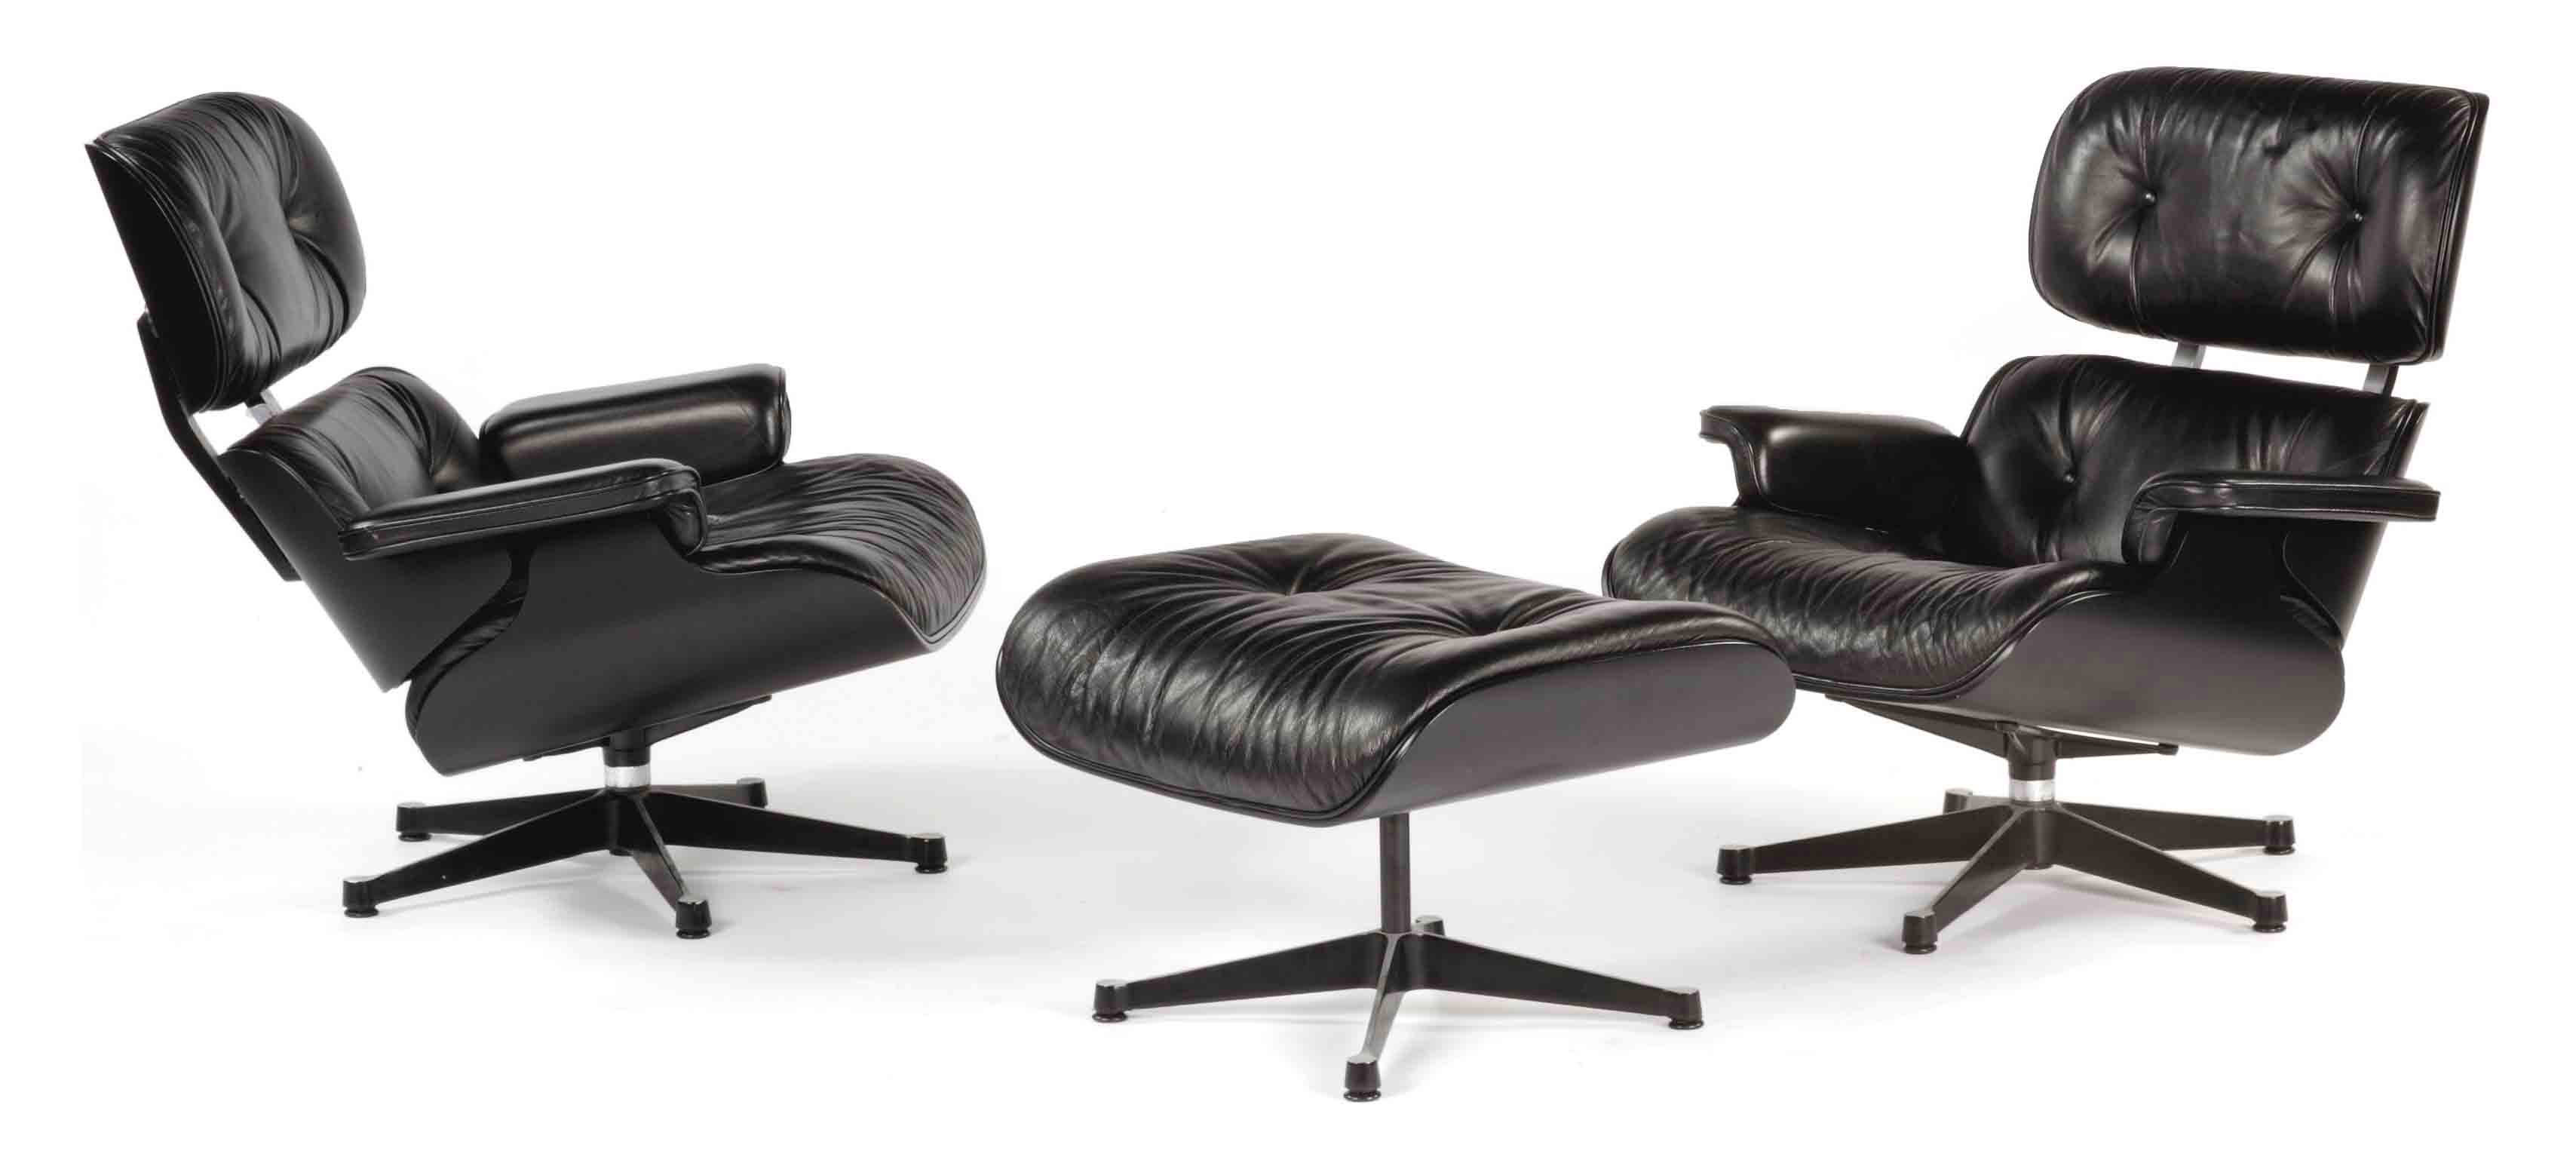 TWO BLACK LAMINATED AND ALUMINUM 'MODEL NO. 670' LOUNGE CHAIRS AND ONE 'MODEL NO. 671' OTTOMAN